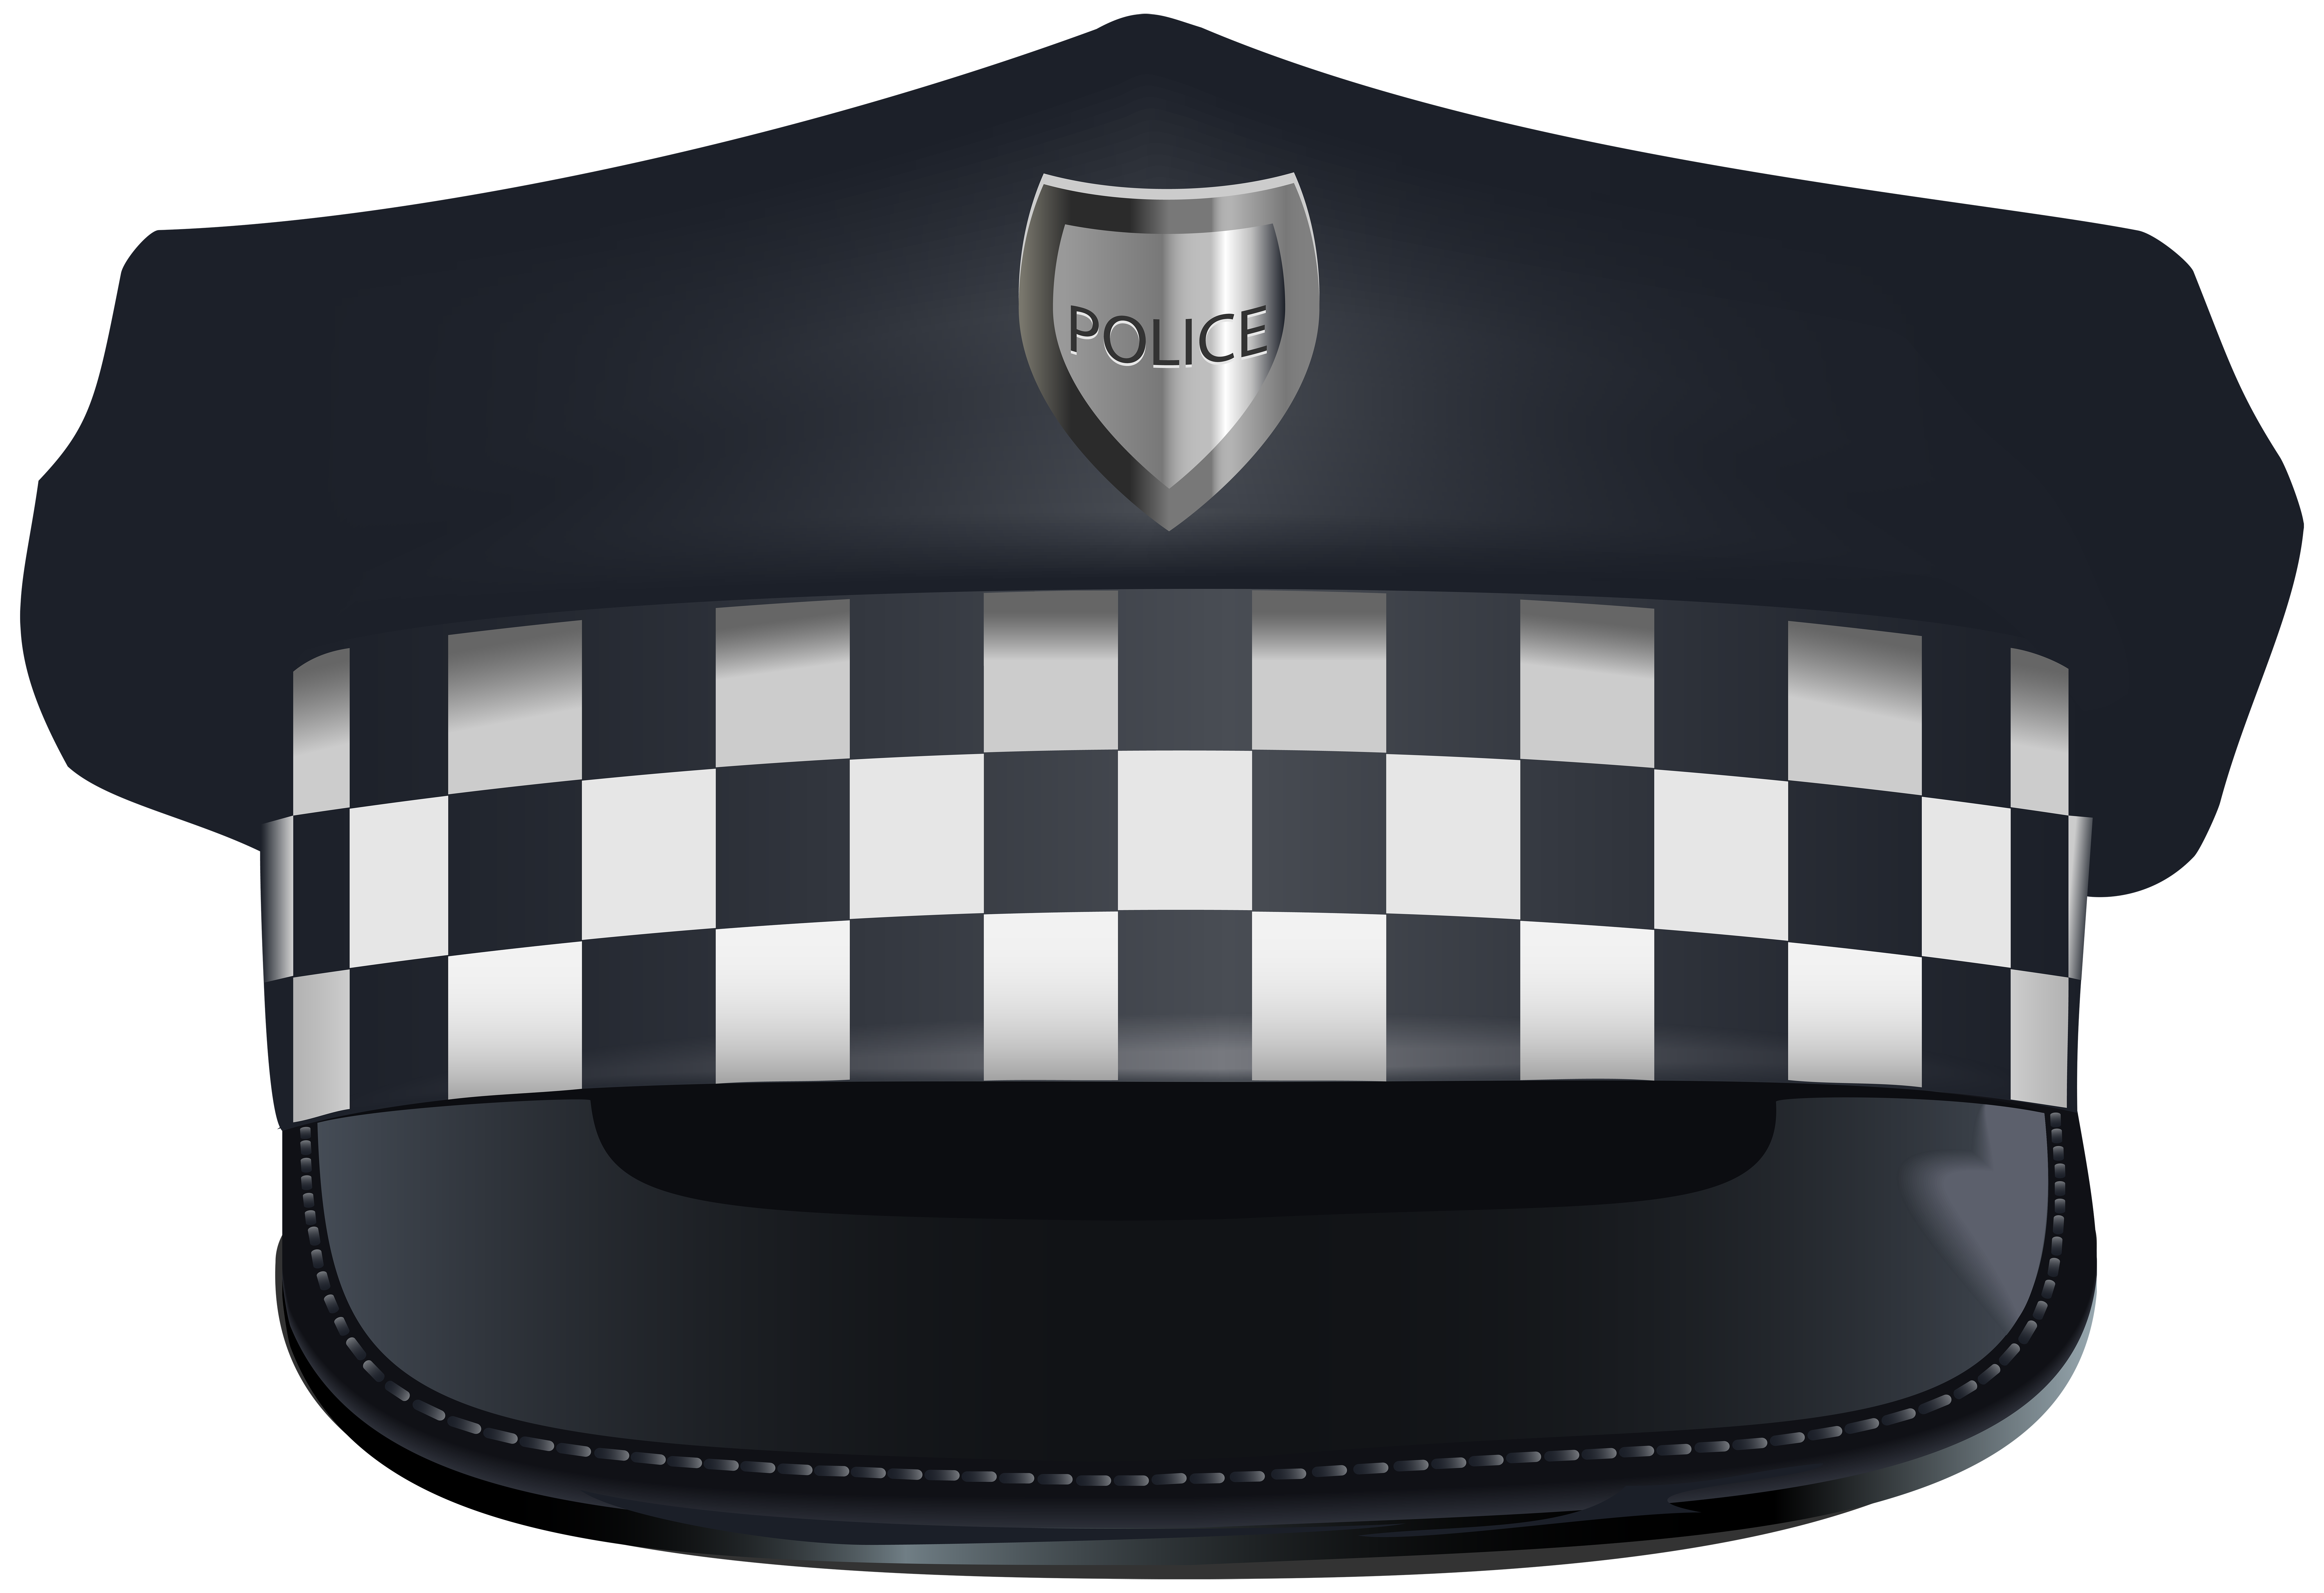 Police hat clipart clip freeuse stock Police Hat PNG Clip Art Image clip freeuse stock